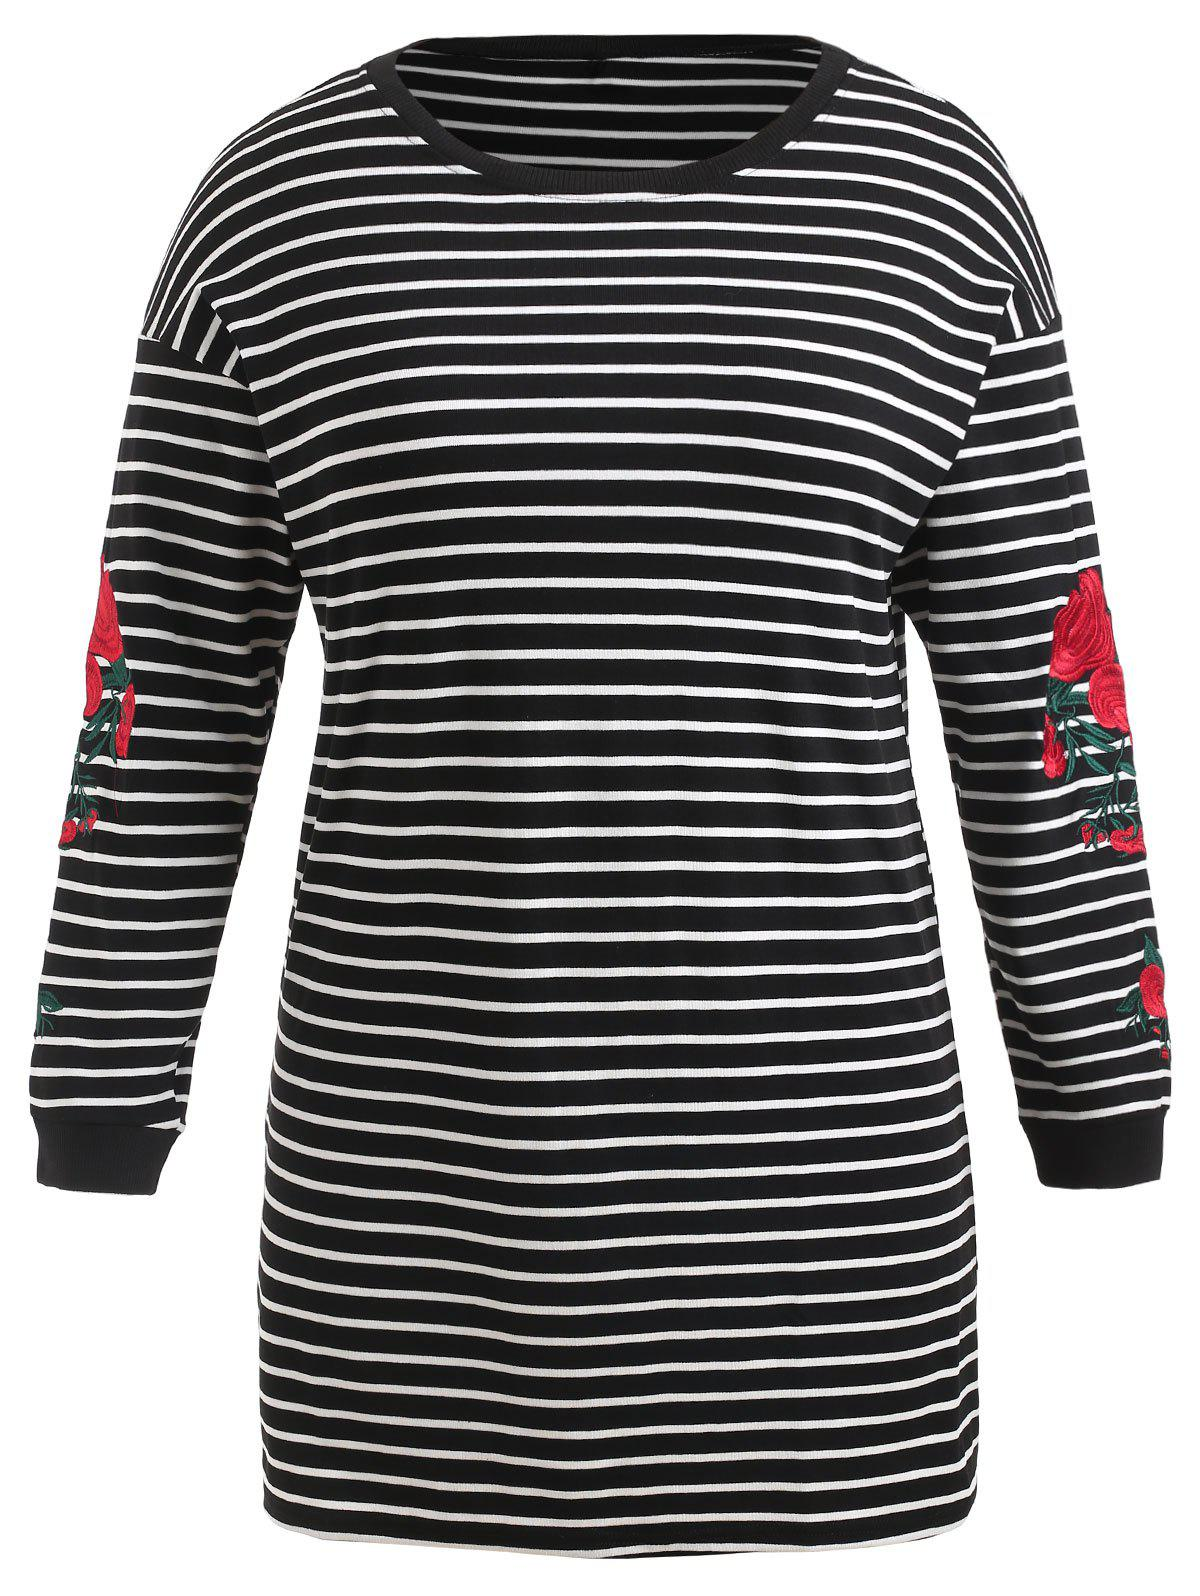 Chic Plus Size Floral Embroidered Striped Tee Dress